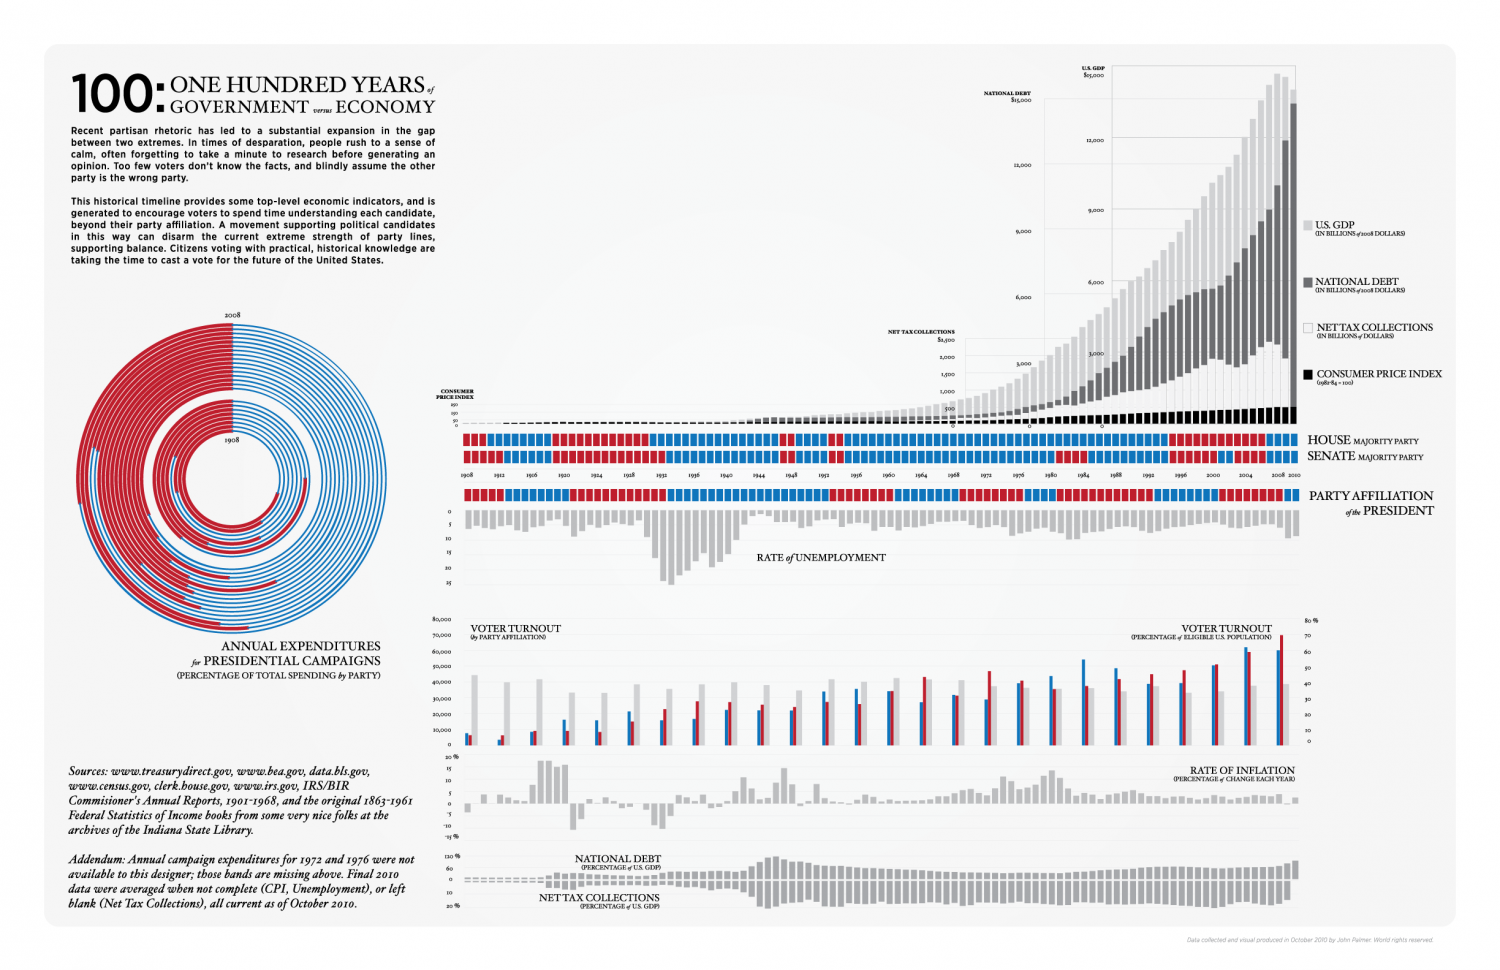 100 Years of Government versus Economy Infographic